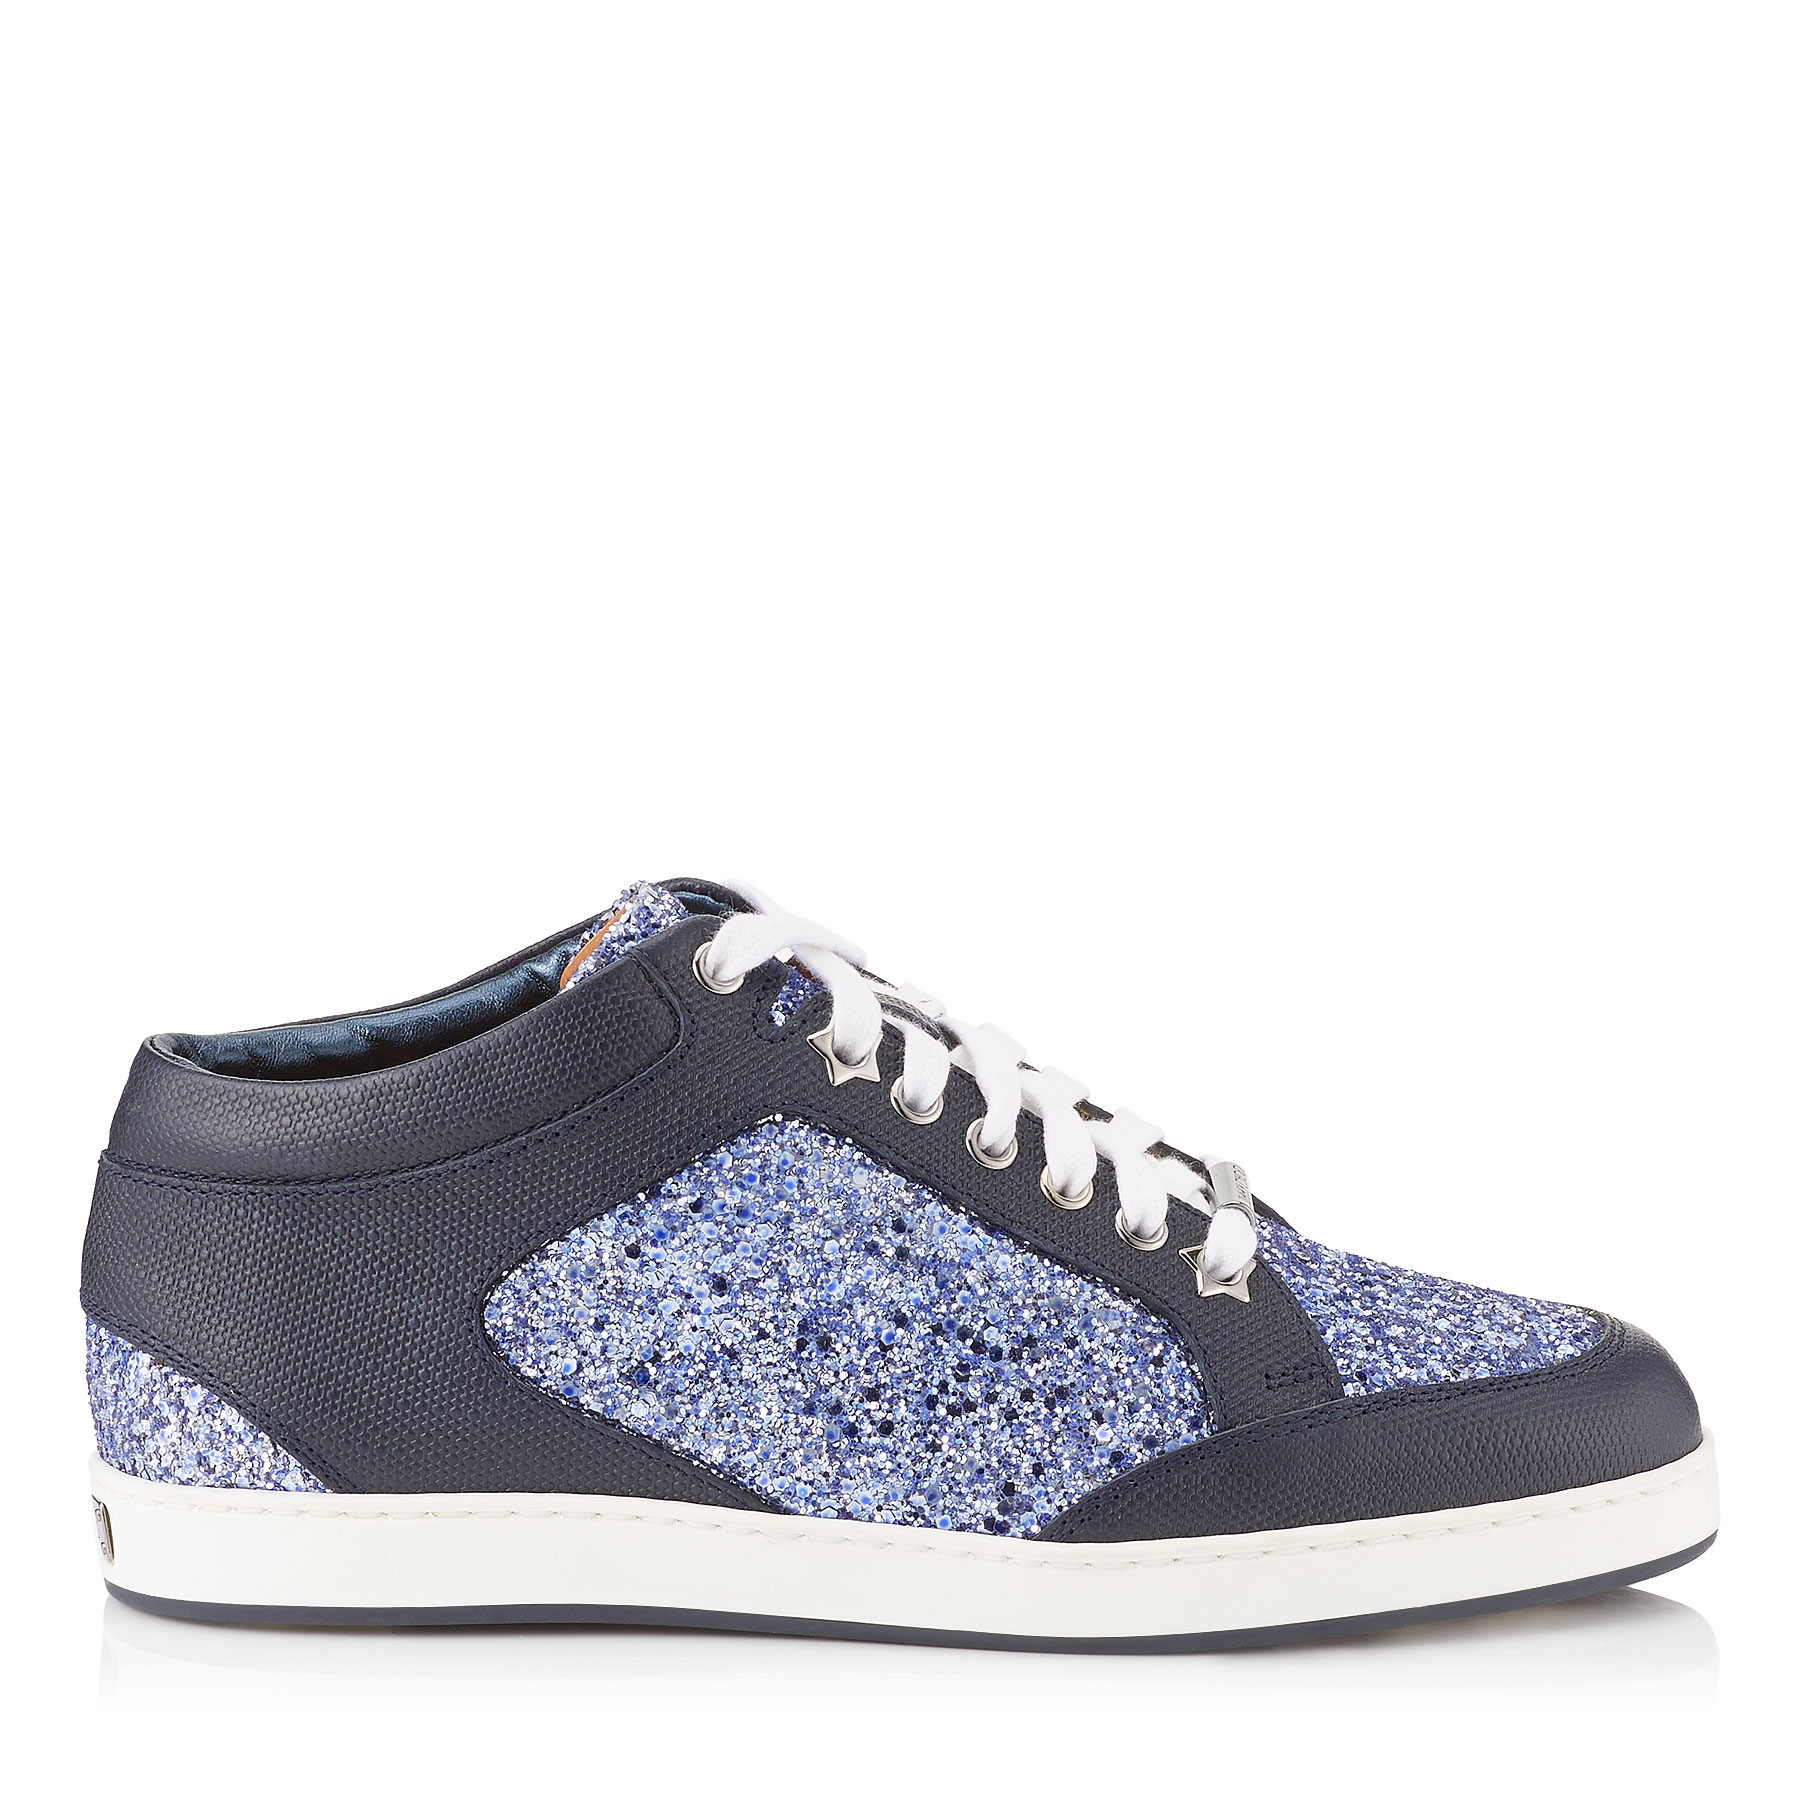 MIAMI Cobalt Shadow Coarse Glitter Fabric Low Top Trainers